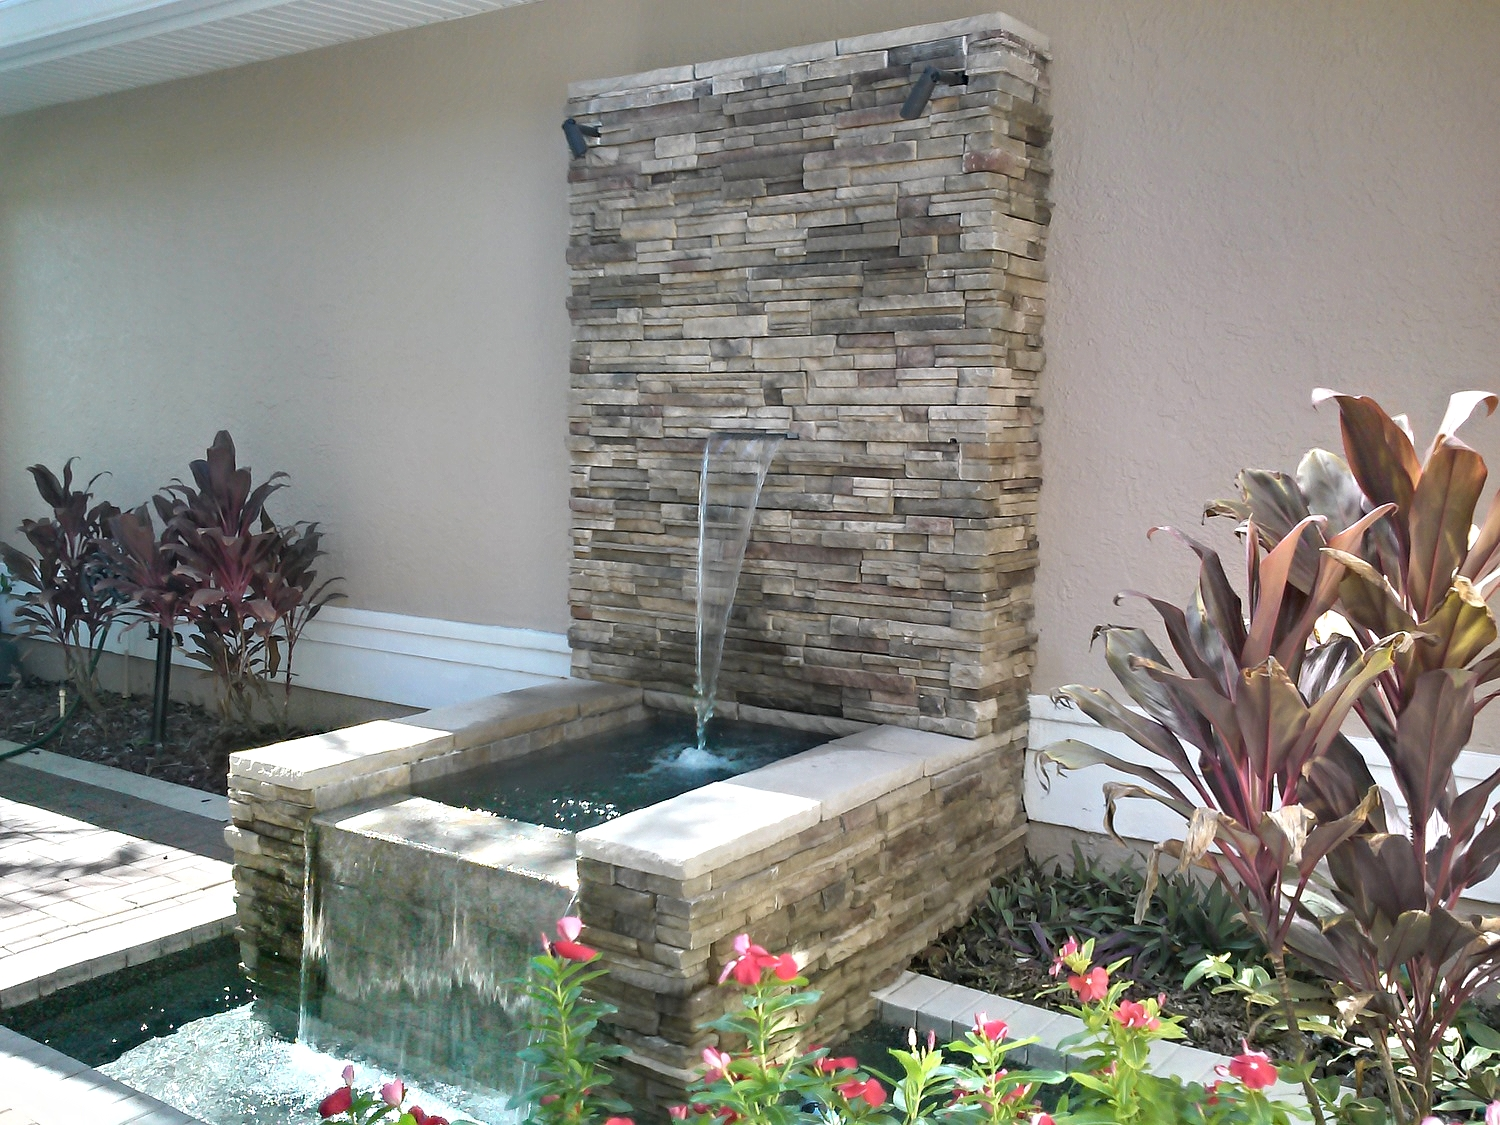 Clark Outdoor Kitchen & Water Feature - Full Water Feature